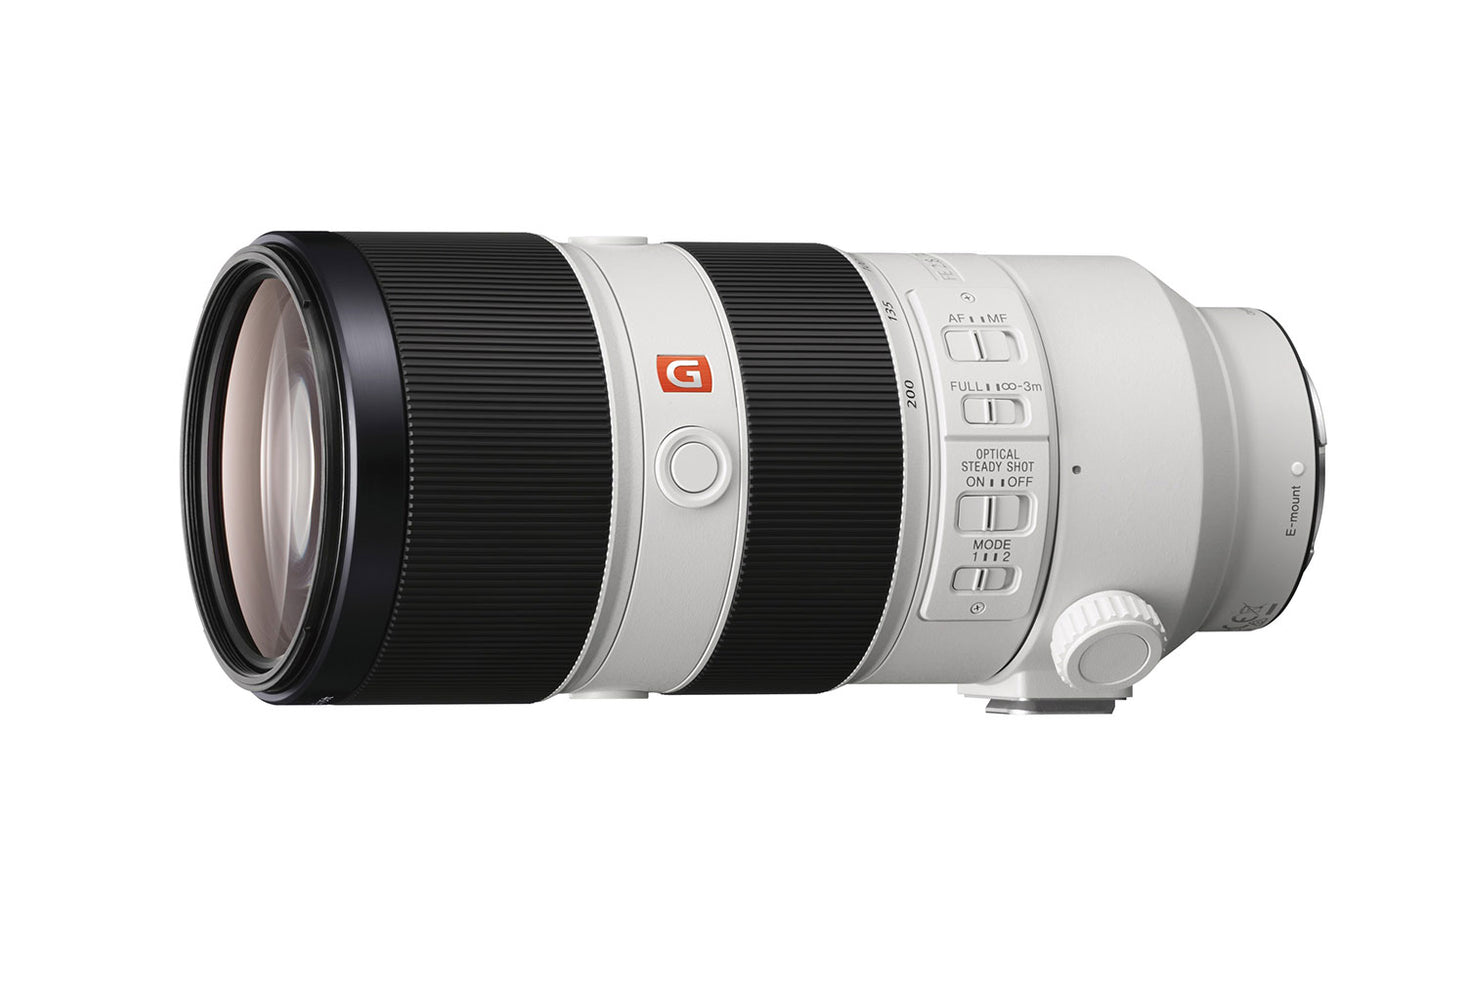 Sony FE 70-200mm f/2.8 GM OSS Lens